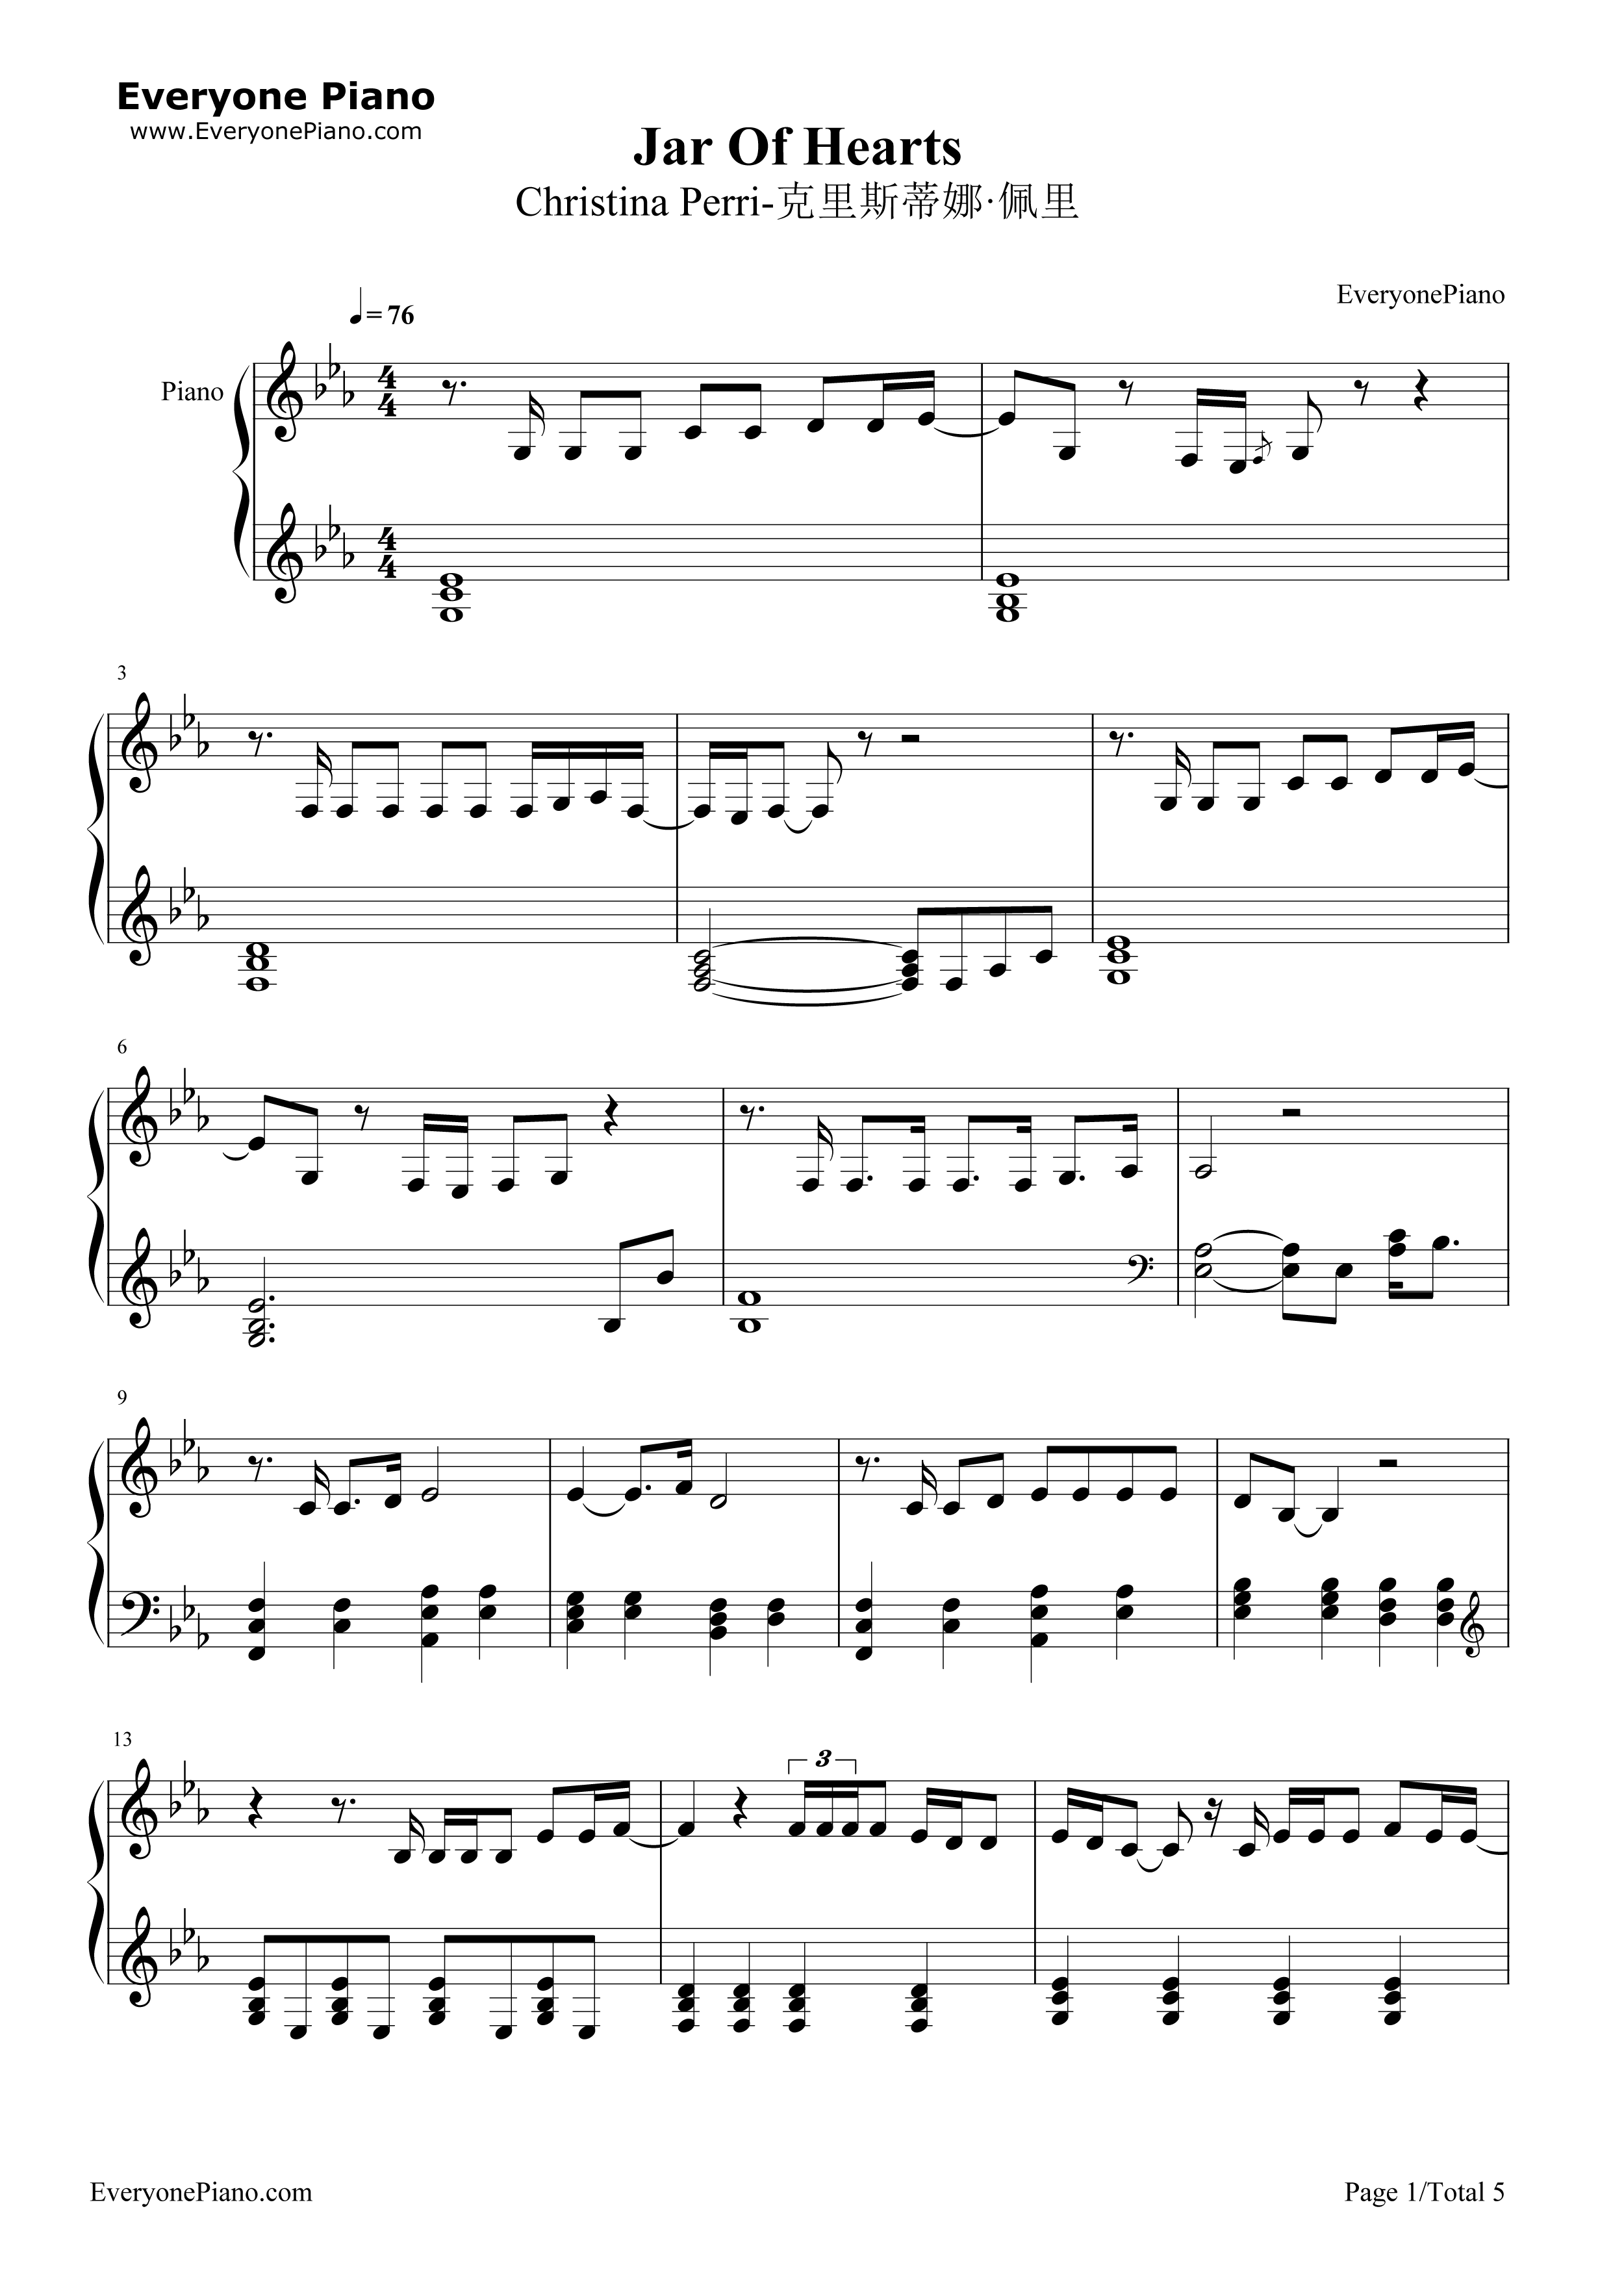 Jar of Hearts-Christina Perri Stave Preview 1-Free Piano Sheet Music u0026 Piano Chords